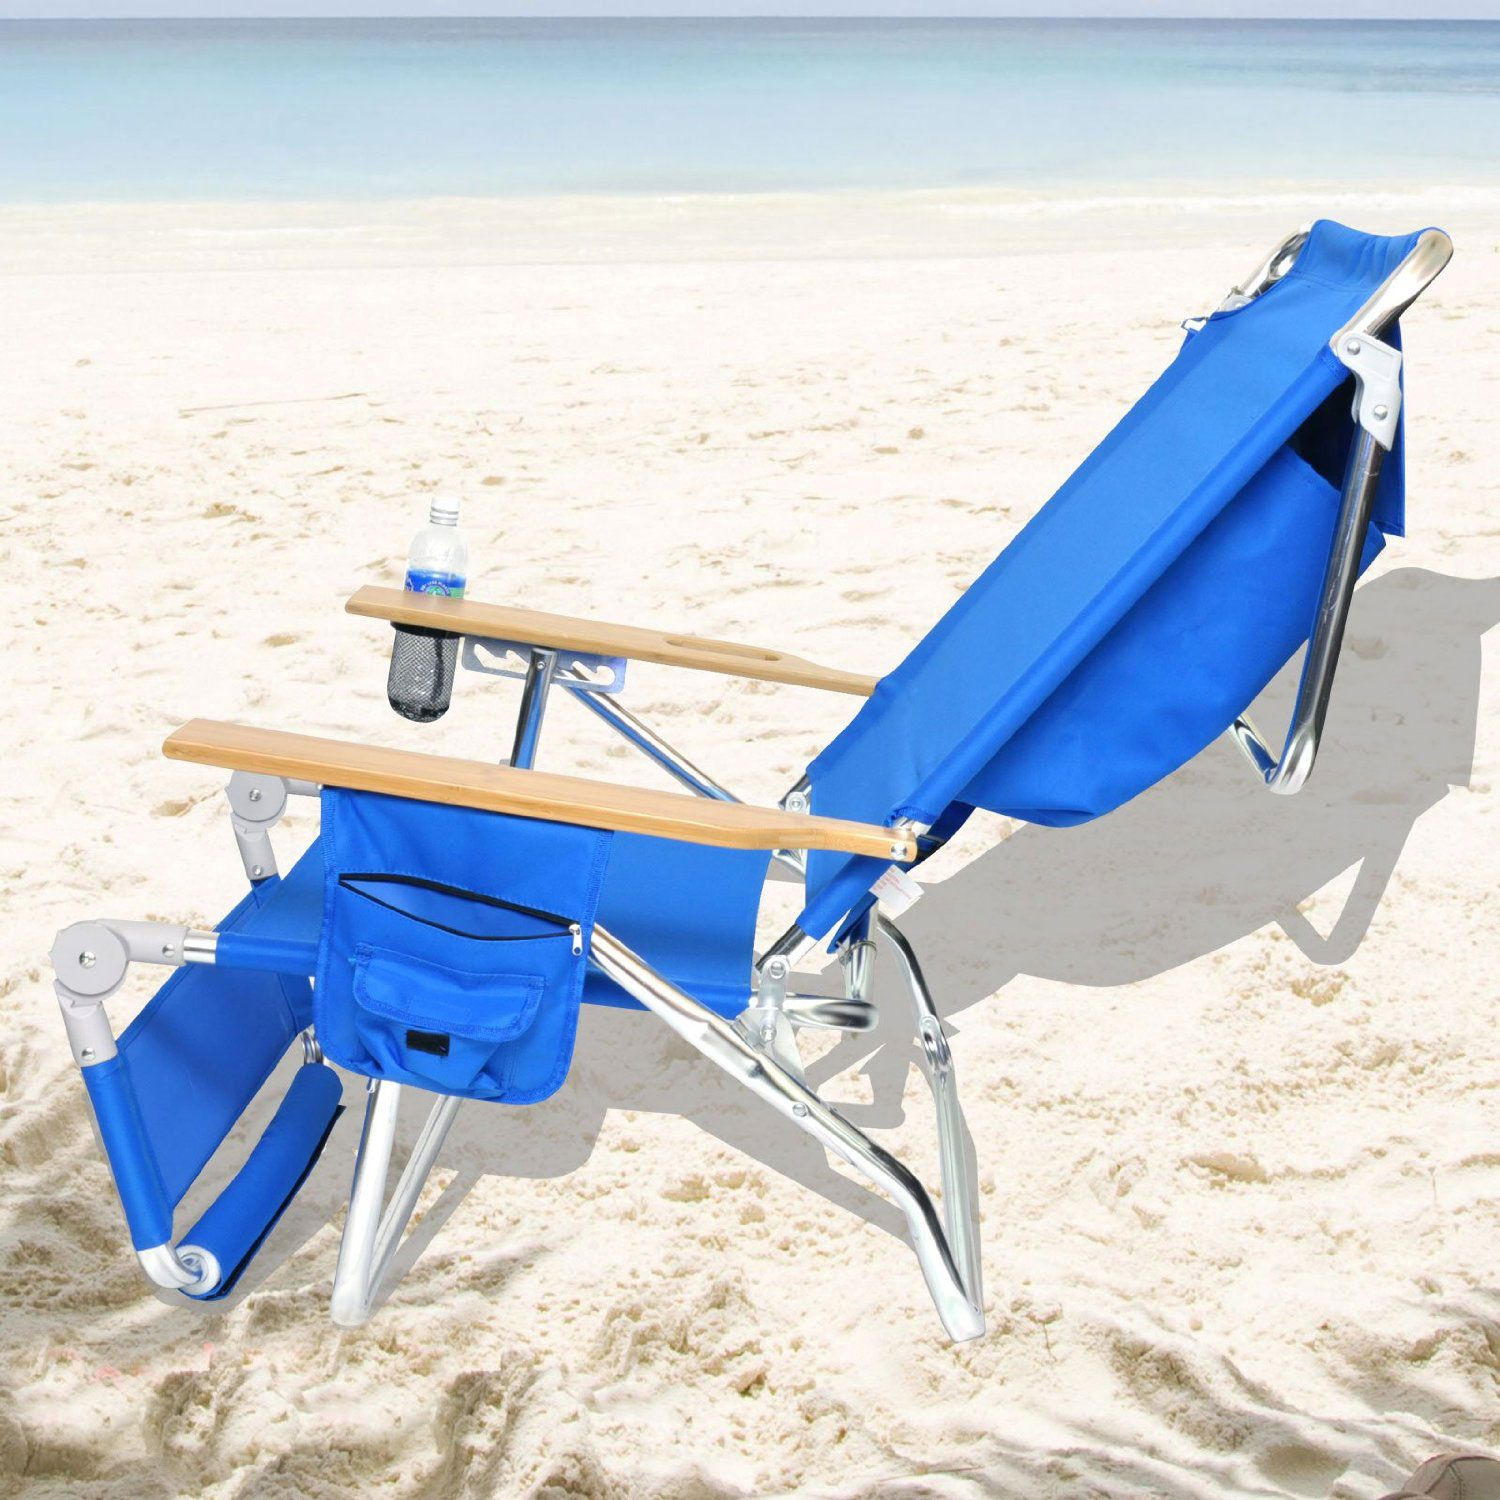 Delightful Why Wholesale Beach Chairs From China Suppliers? Our Cheap Beach Chairs And  Best Pool Chairs Come In Many Styles.